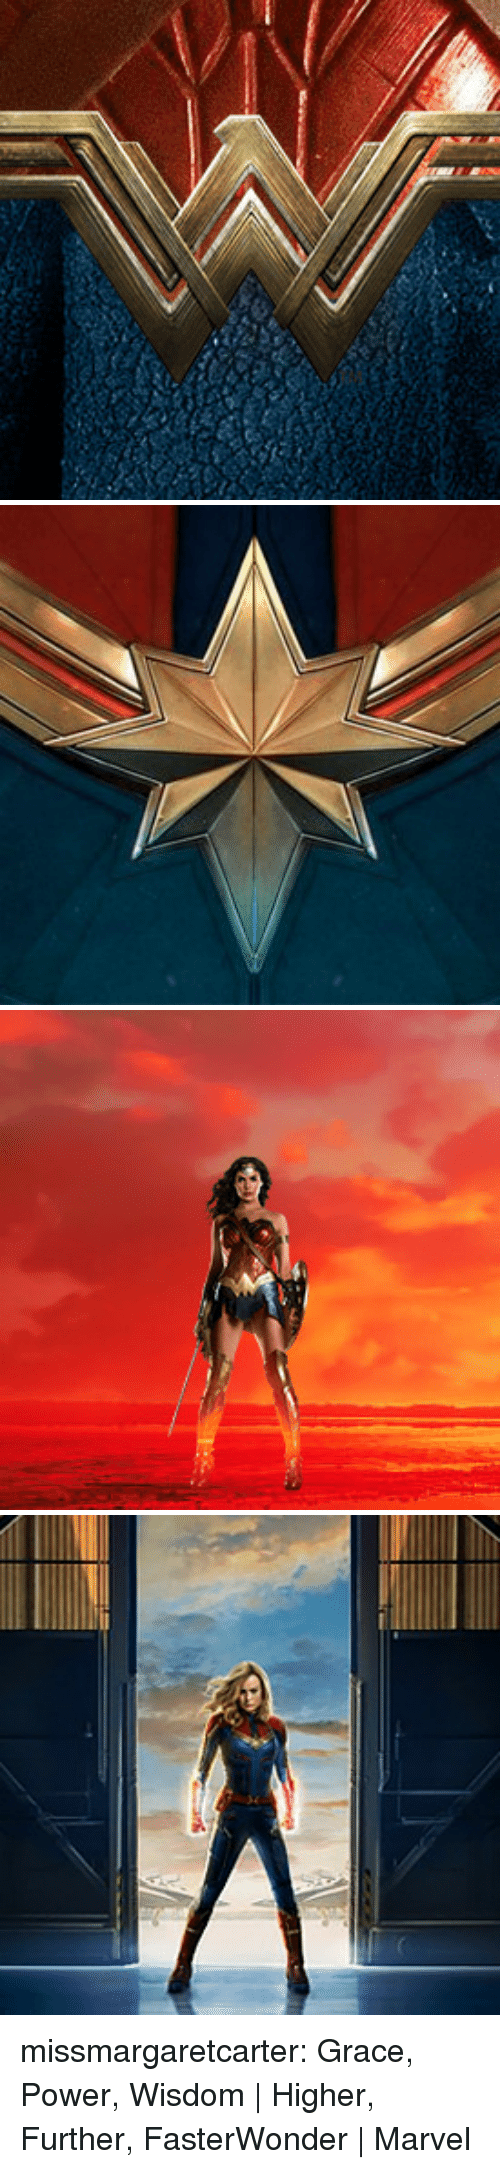 Target, Tumblr, and Blog: missmargaretcarter:  Grace, Power, Wisdom | Higher, Further, FasterWonder | Marvel